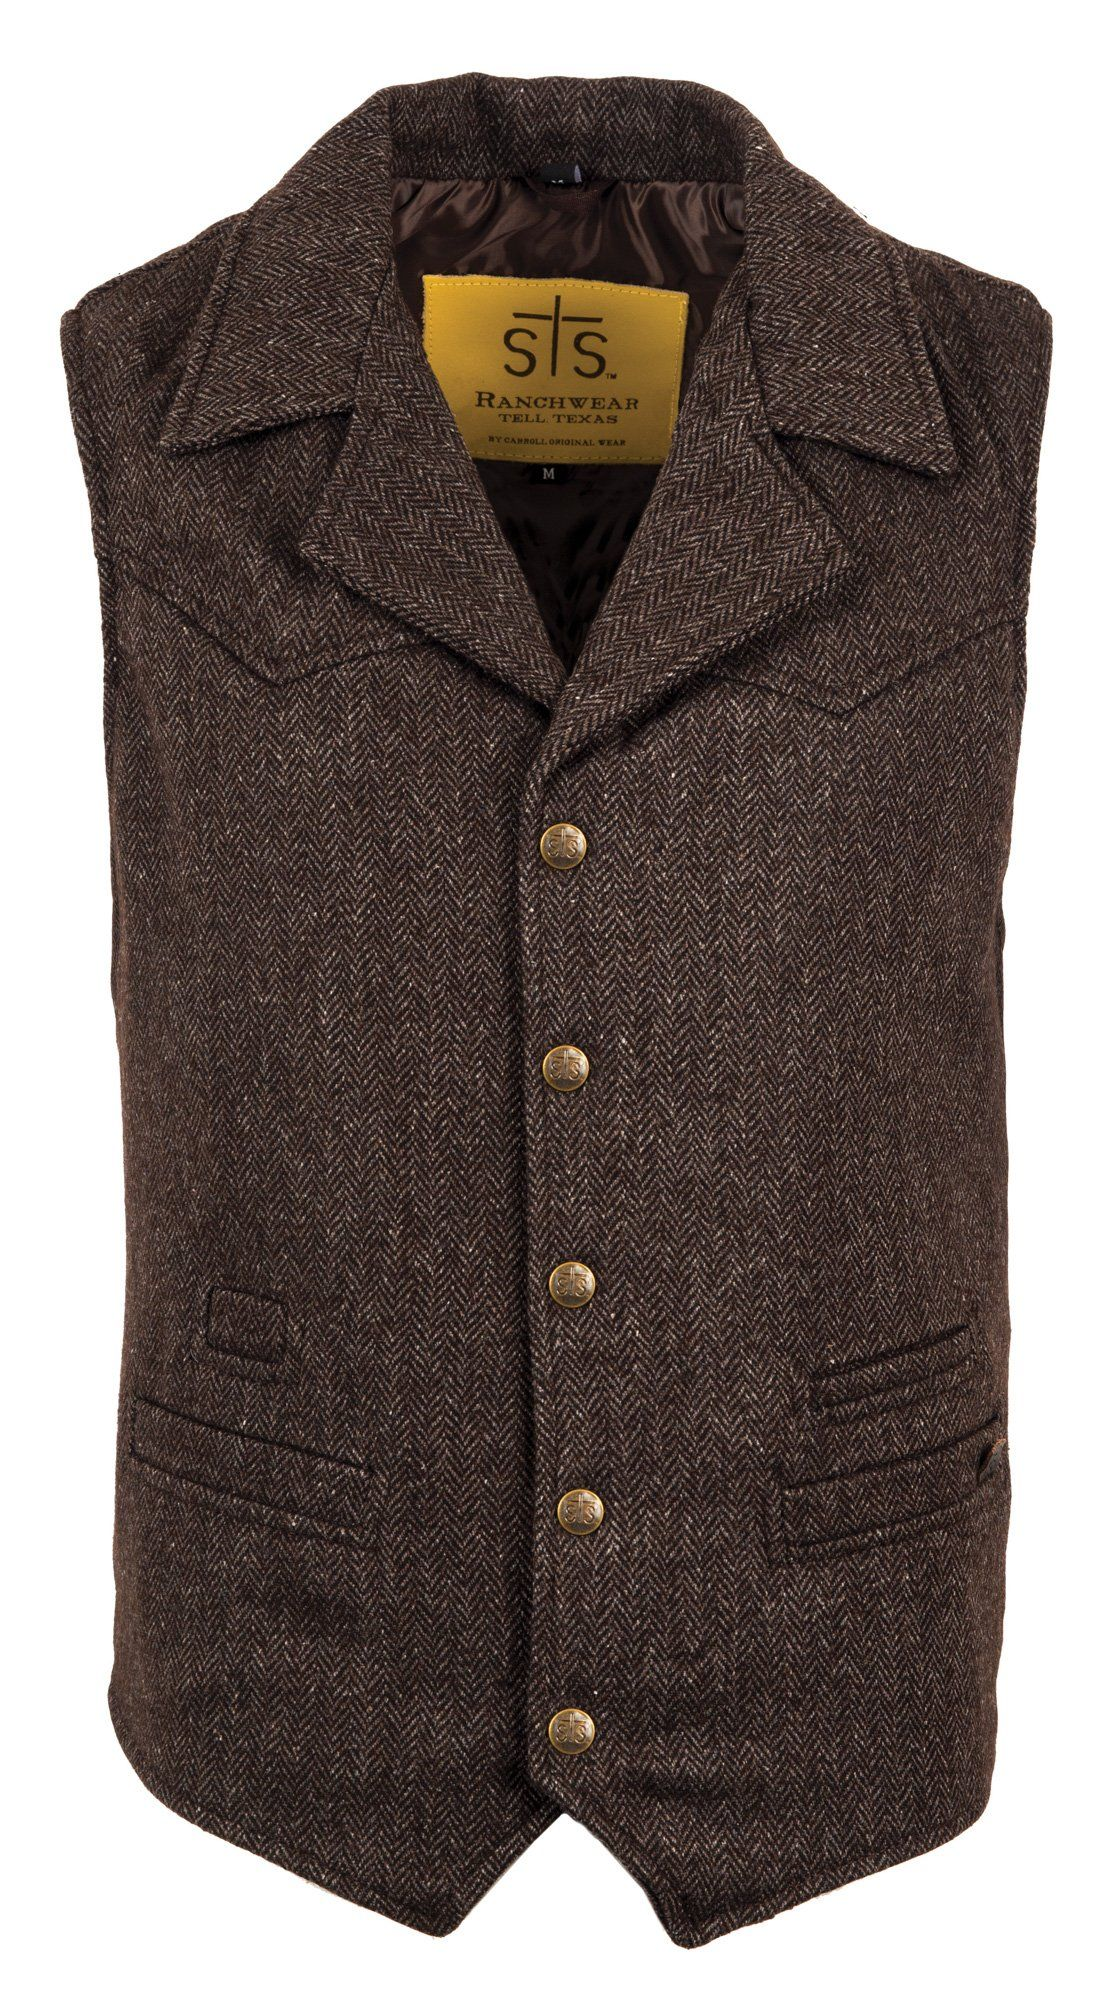 Sts Ranchwear Mens Gambler Wool Vest Chocolate Western The Western Company Mens Vest Fashion Vest Outfits Men Mens Outfits [ 2000 x 1102 Pixel ]